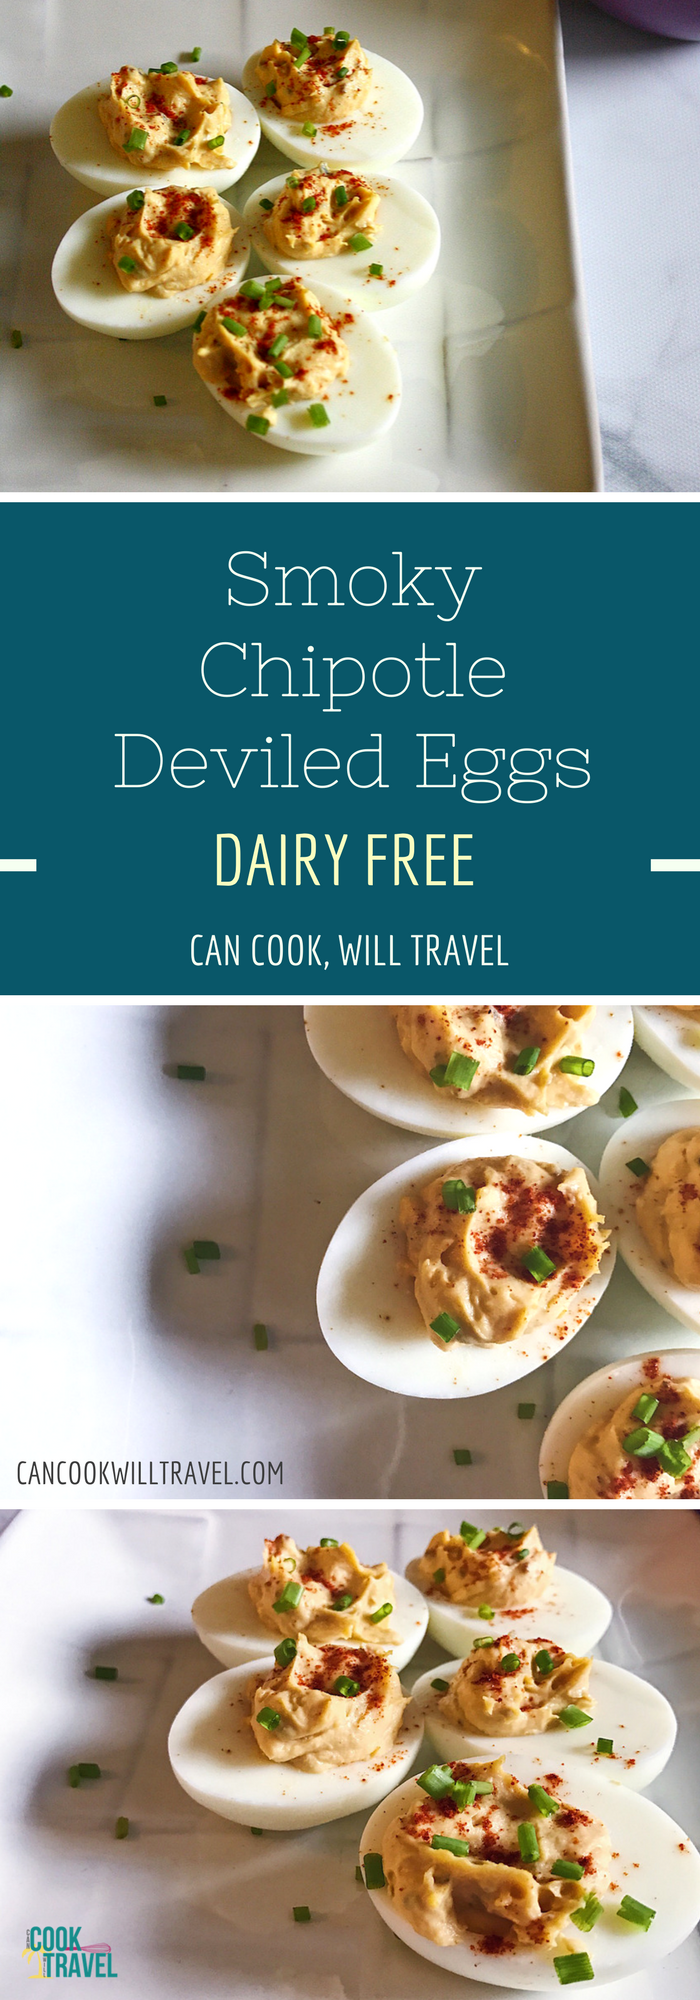 Chipotle Deviled Eggs